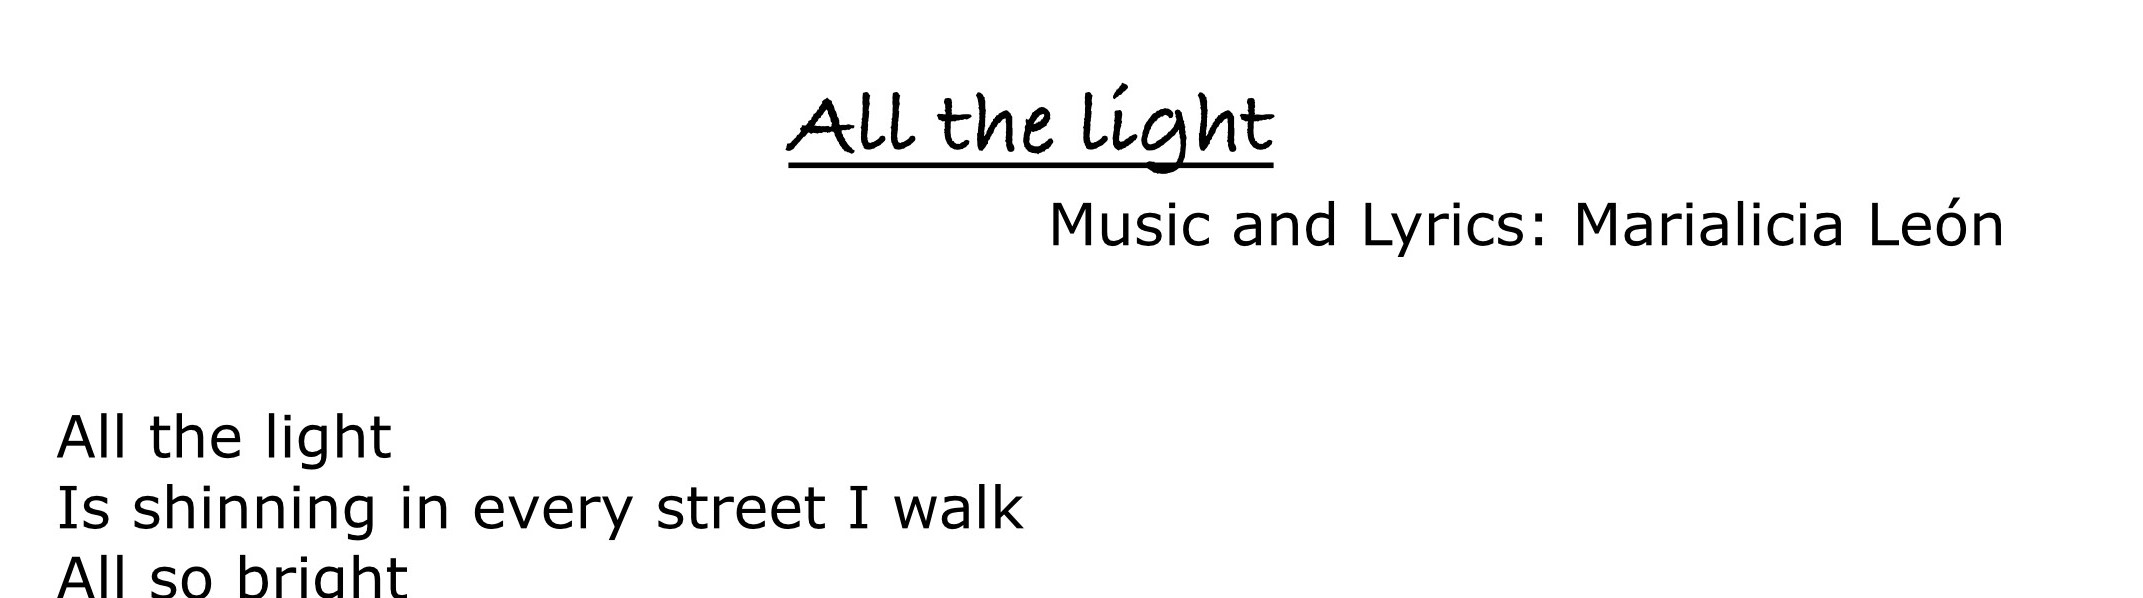 "This is a thumbnail. The Lyrics will expand in the ""Click to enlarge"" section."